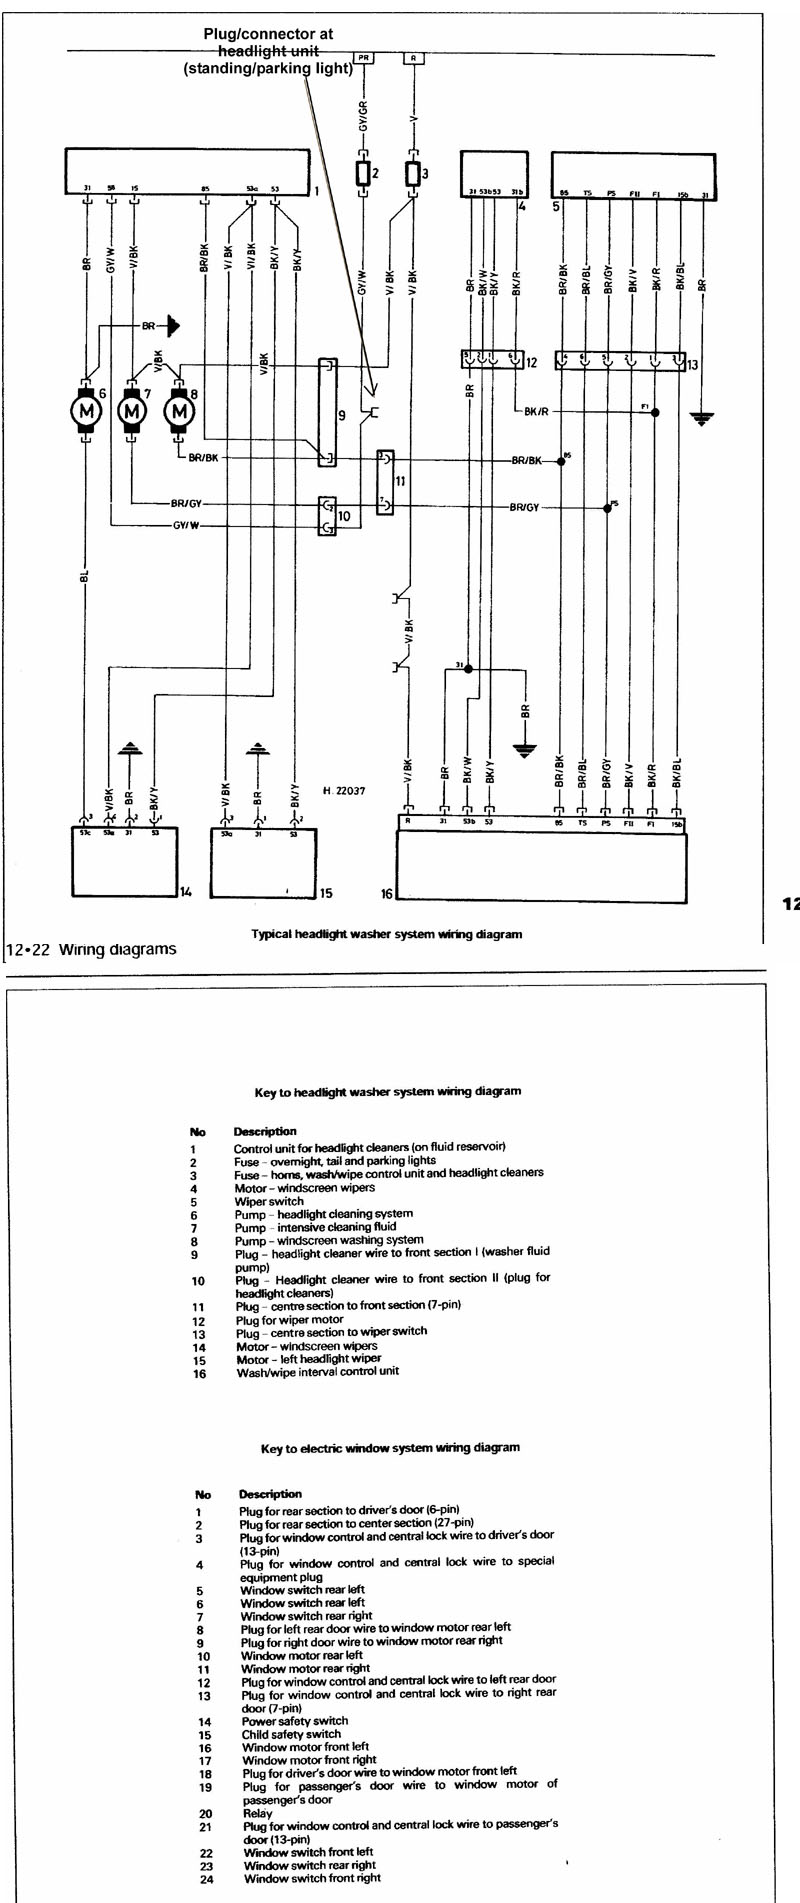 e28 engine diagram wiring library Choo Choo Customs El Camino e28 engine diagram